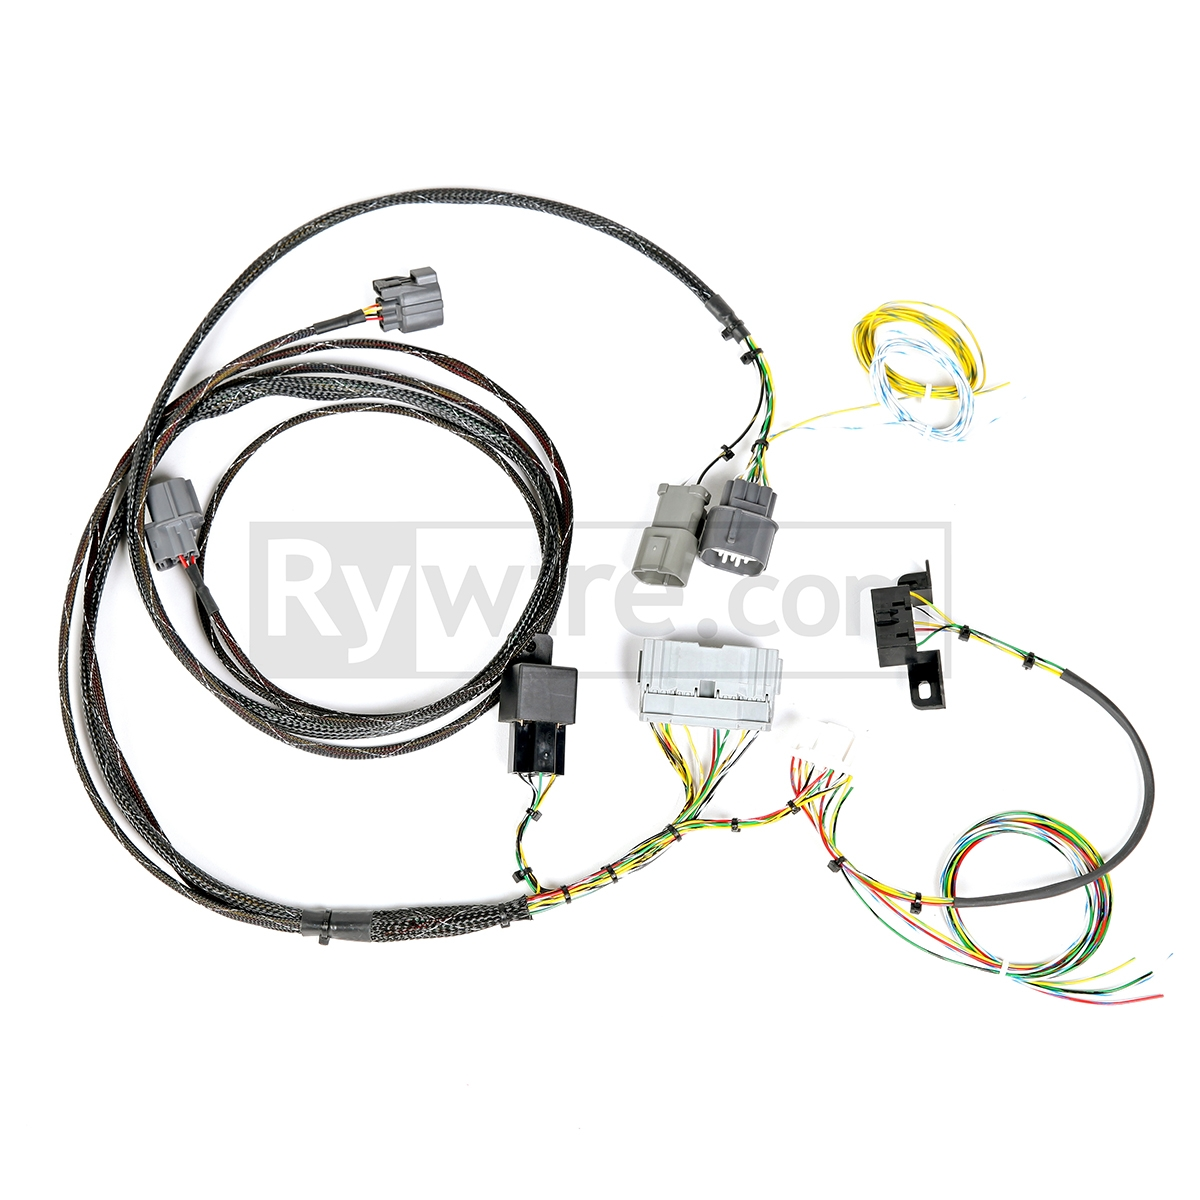 rywire k series chassis adapter K20 Wiring Harness